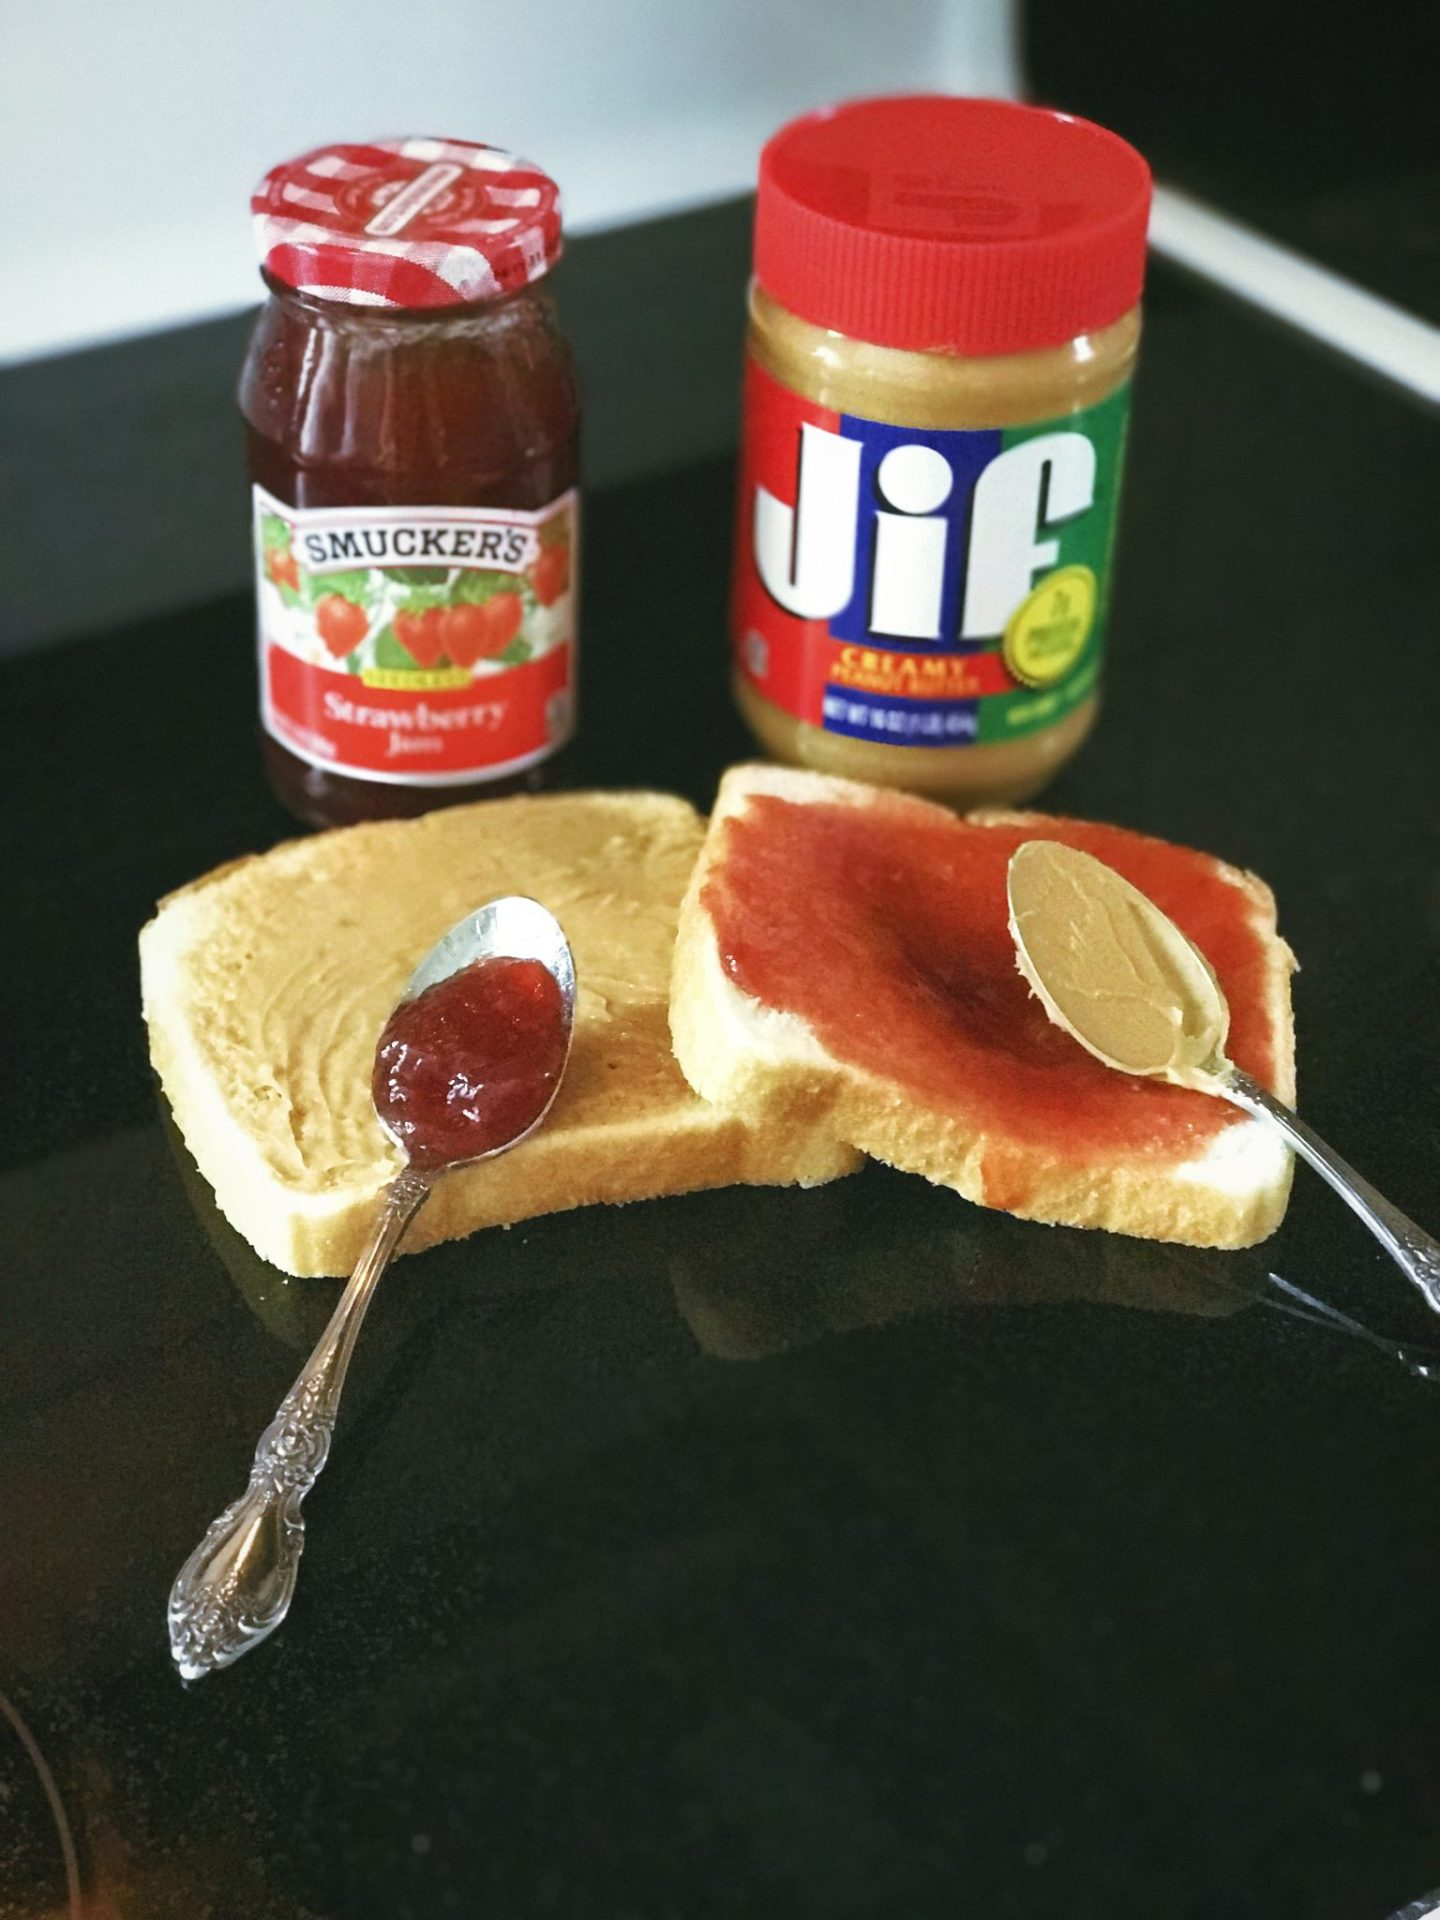 Always use a spoon when applying Jif and Smucker's